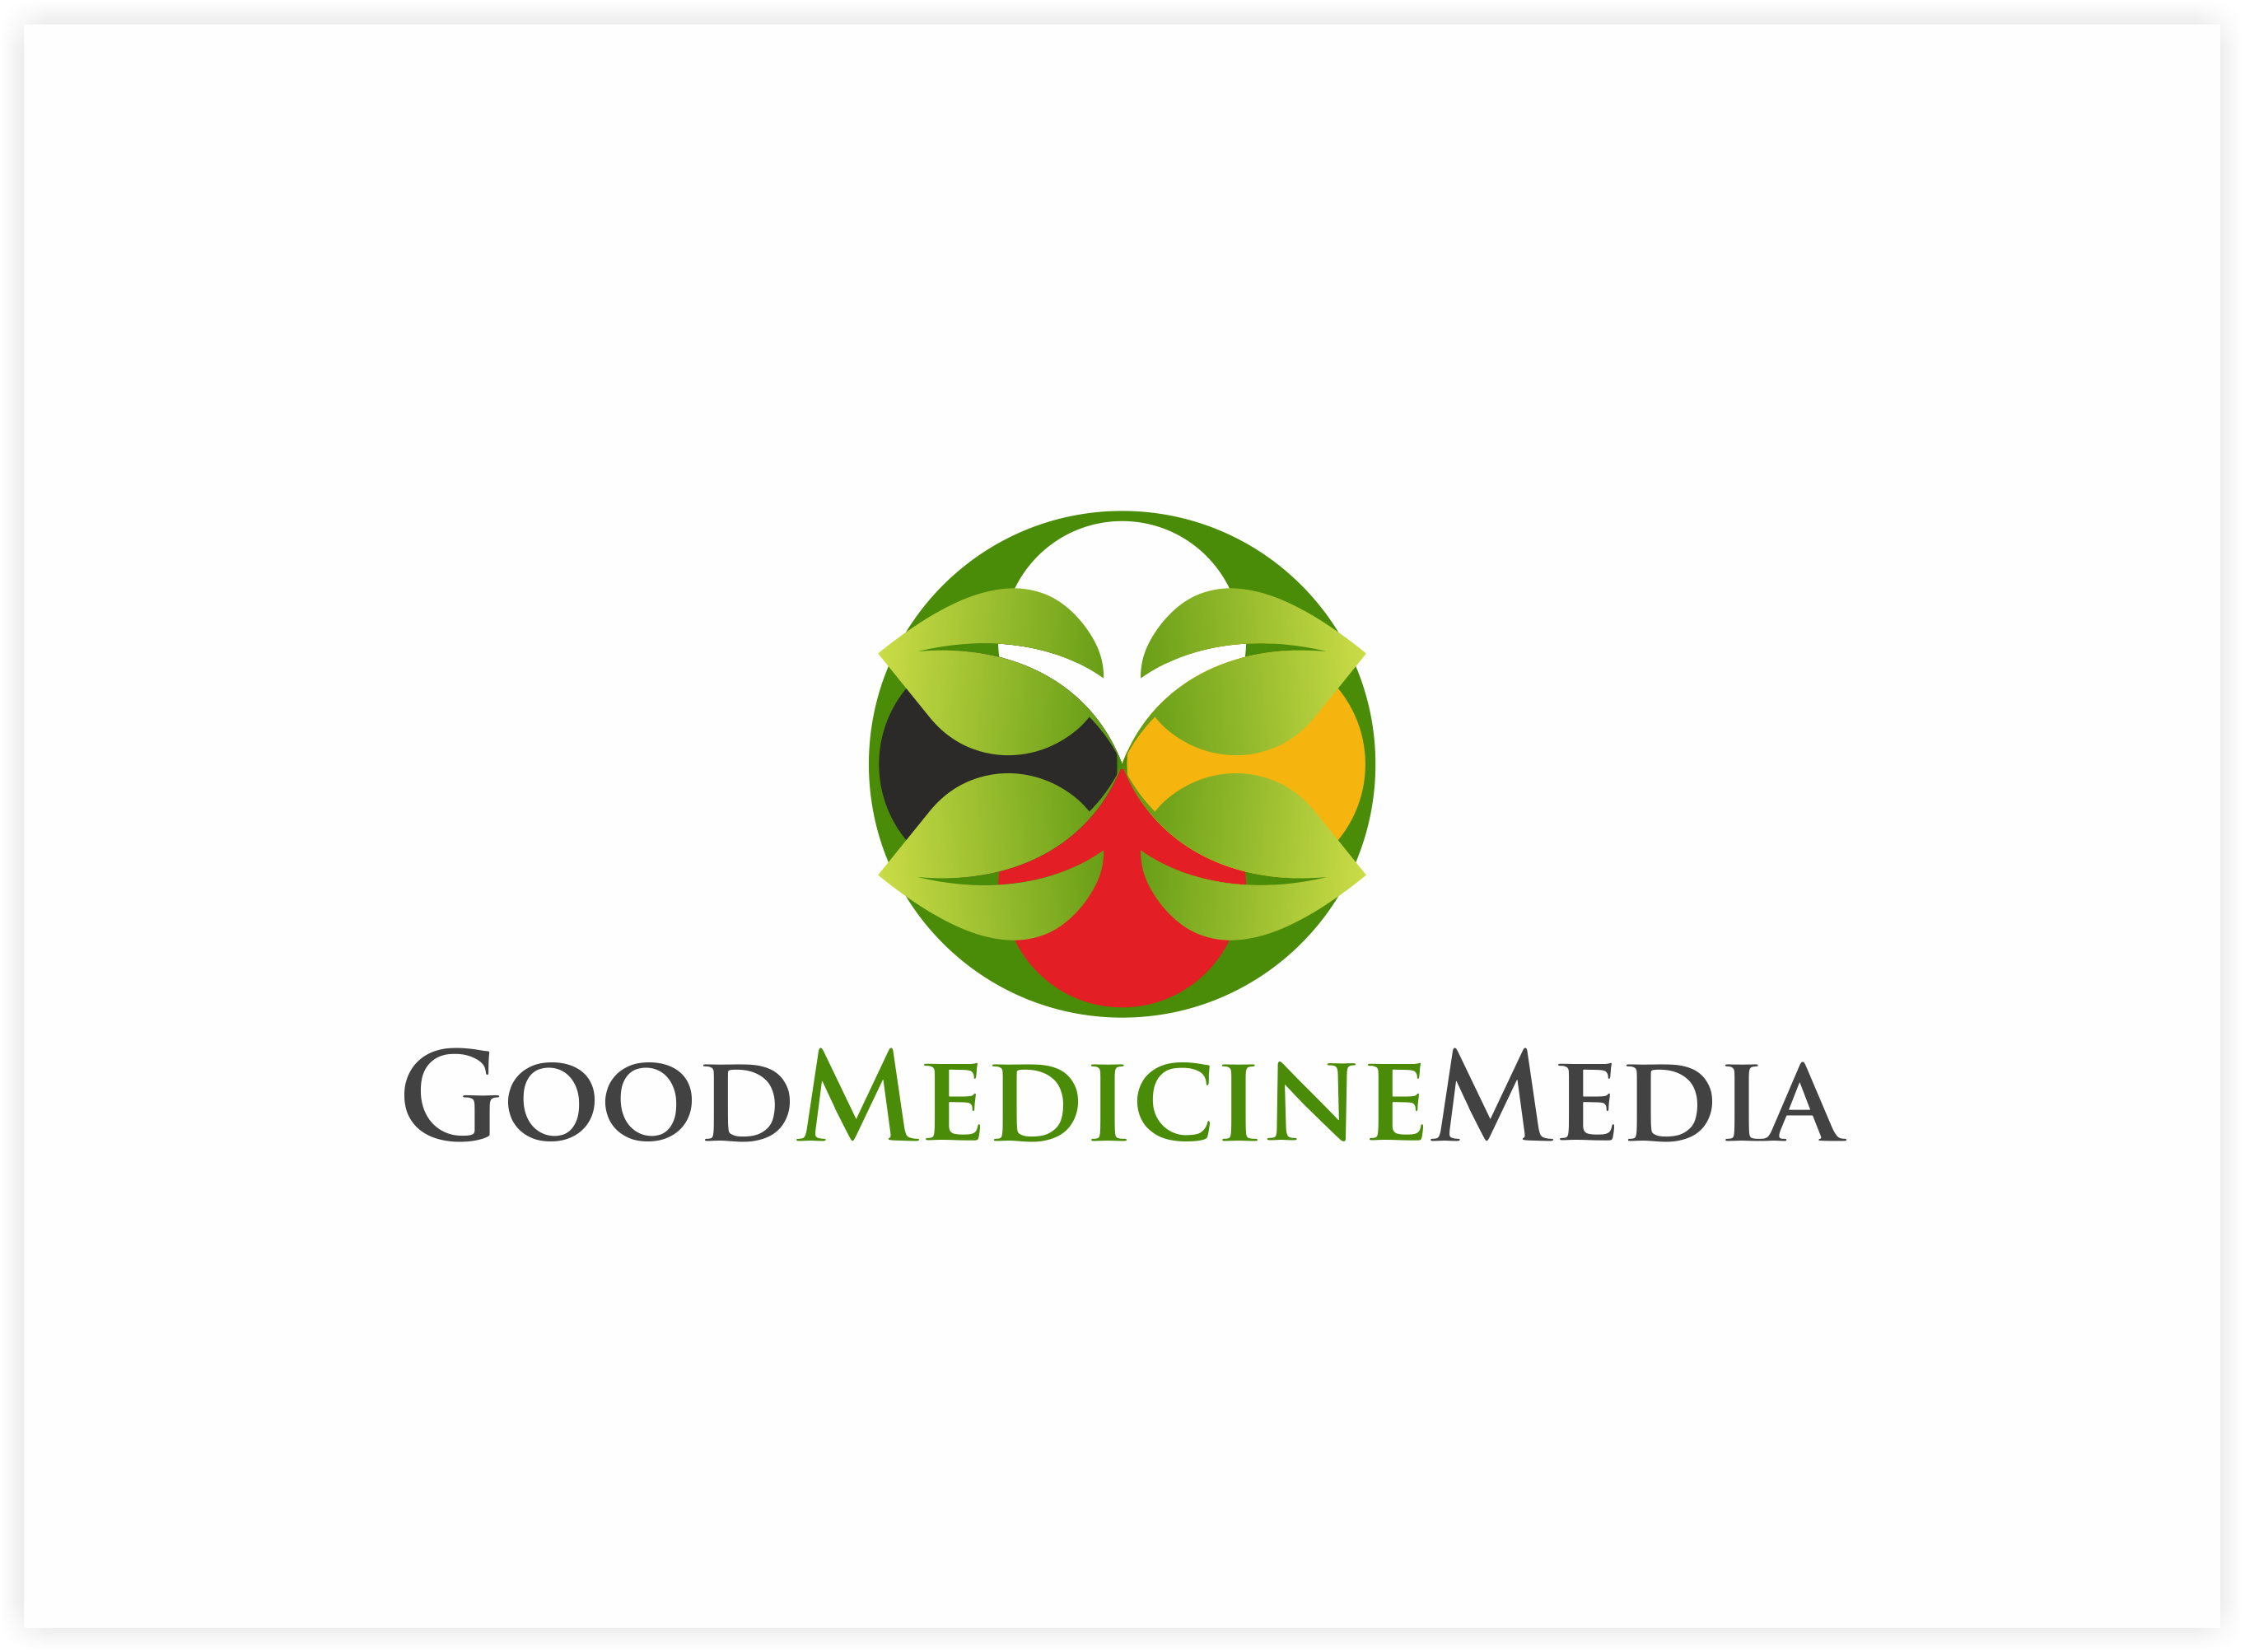 Logo Design by Luis Benayas - Entry No. 143 in the Logo Design Contest Good Medicine Media Logo Design.